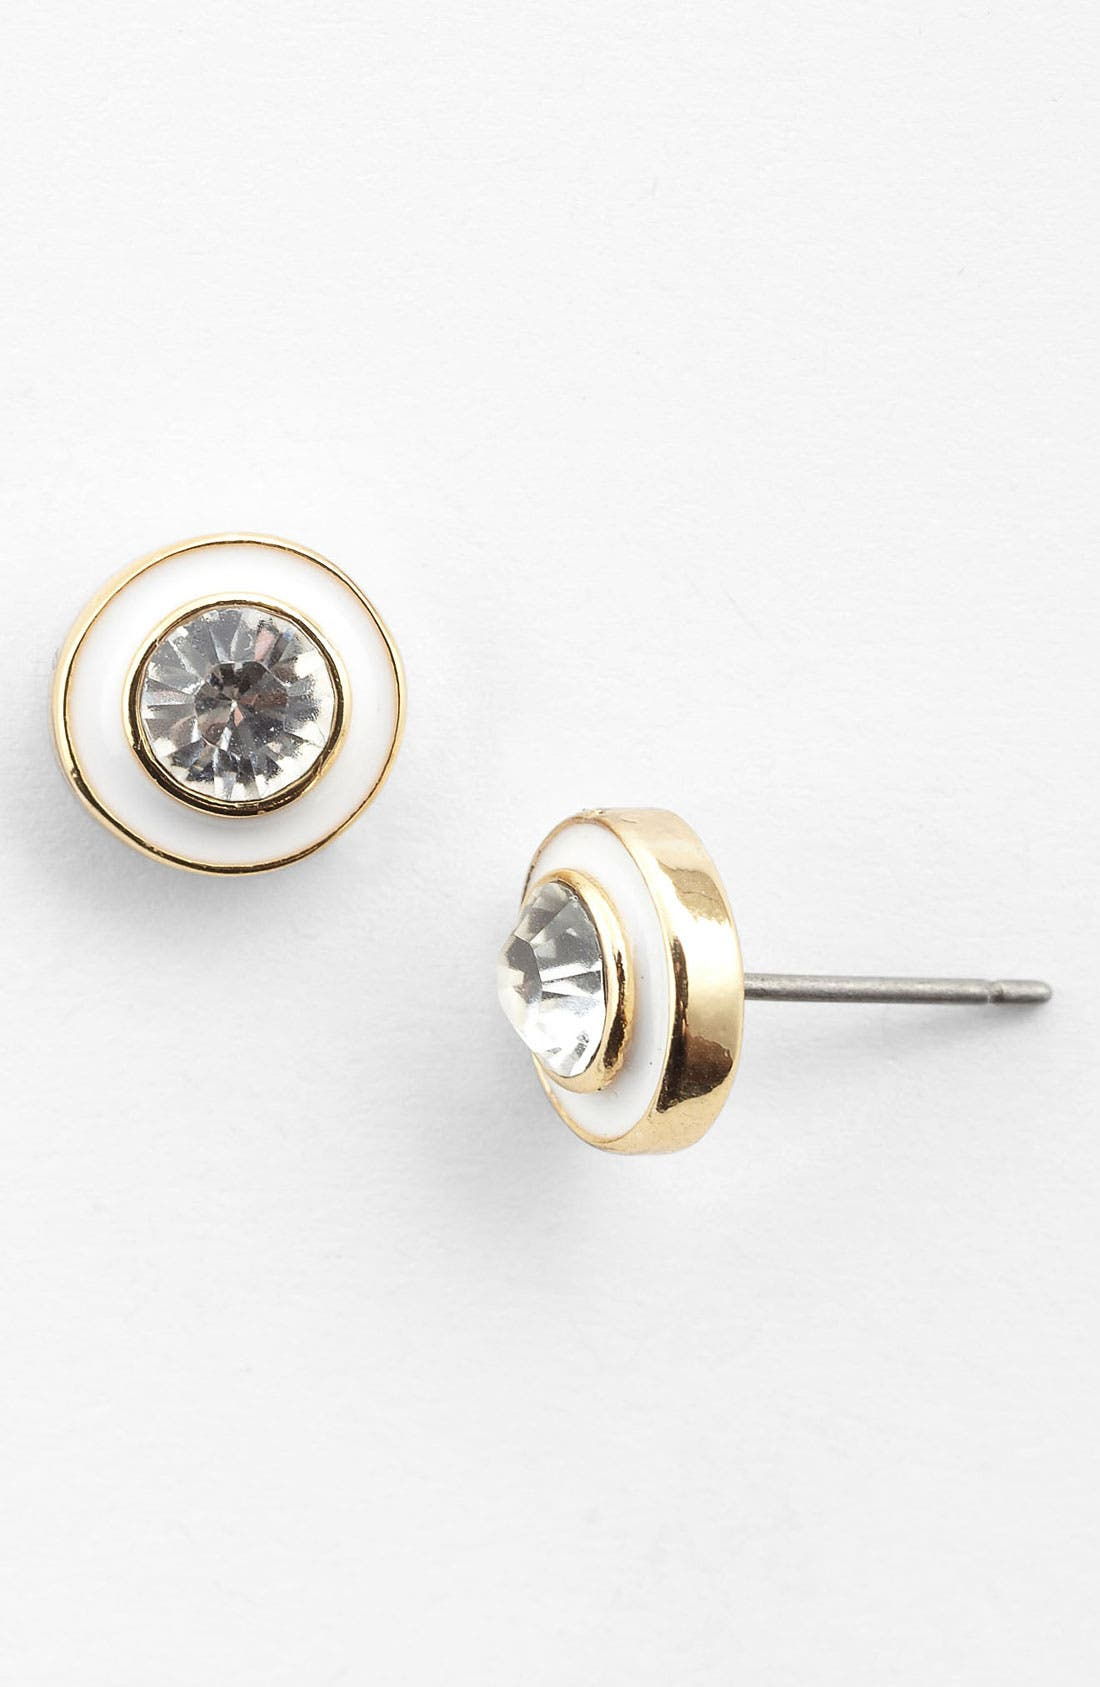 Main Image - Givenchy 'Harvest' Stud Earrings